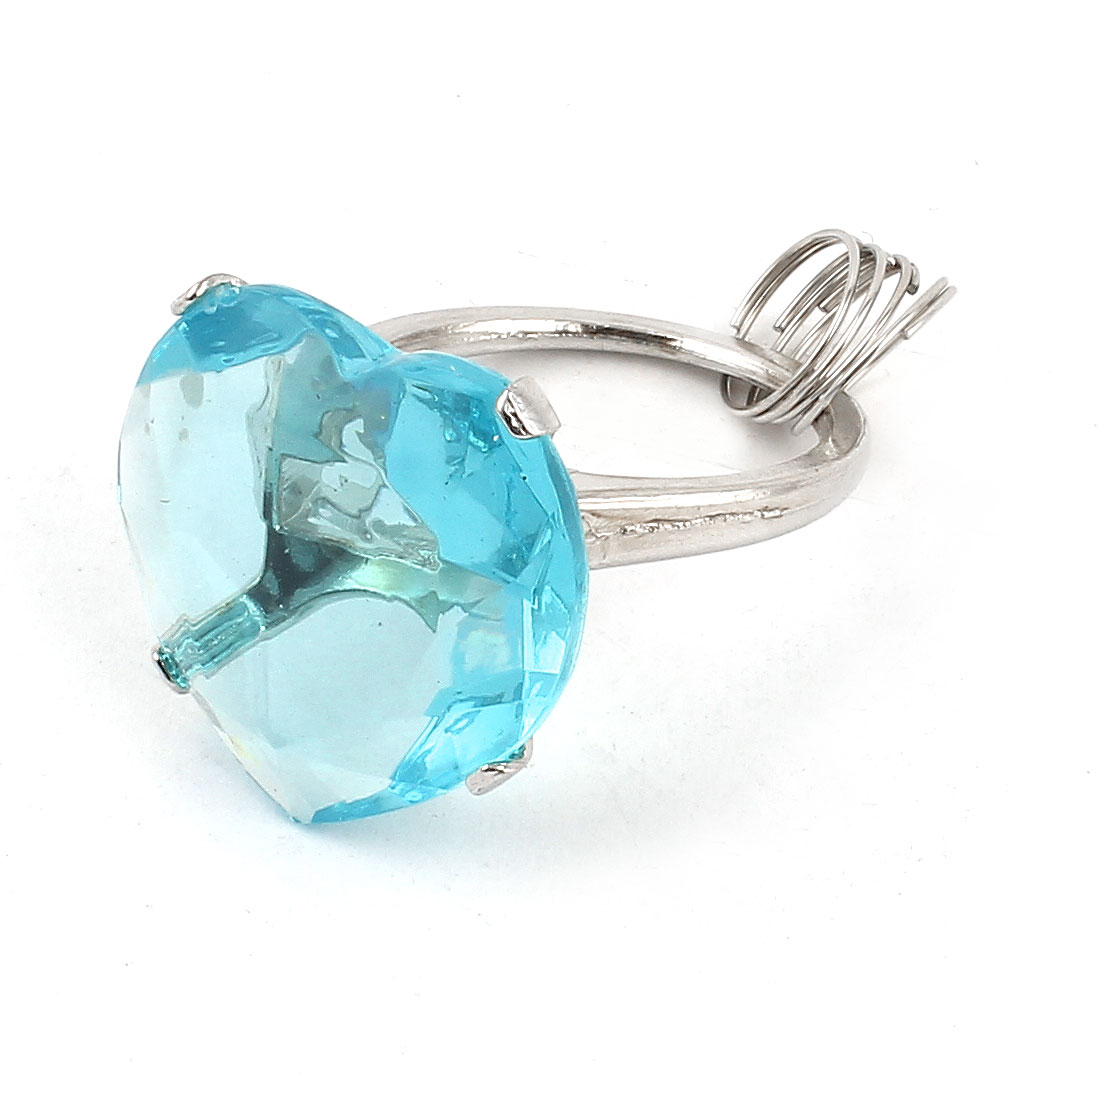 Clear Blue Faux Crystal Accent Plastic Heart Shape Ring Design Keyring Chain